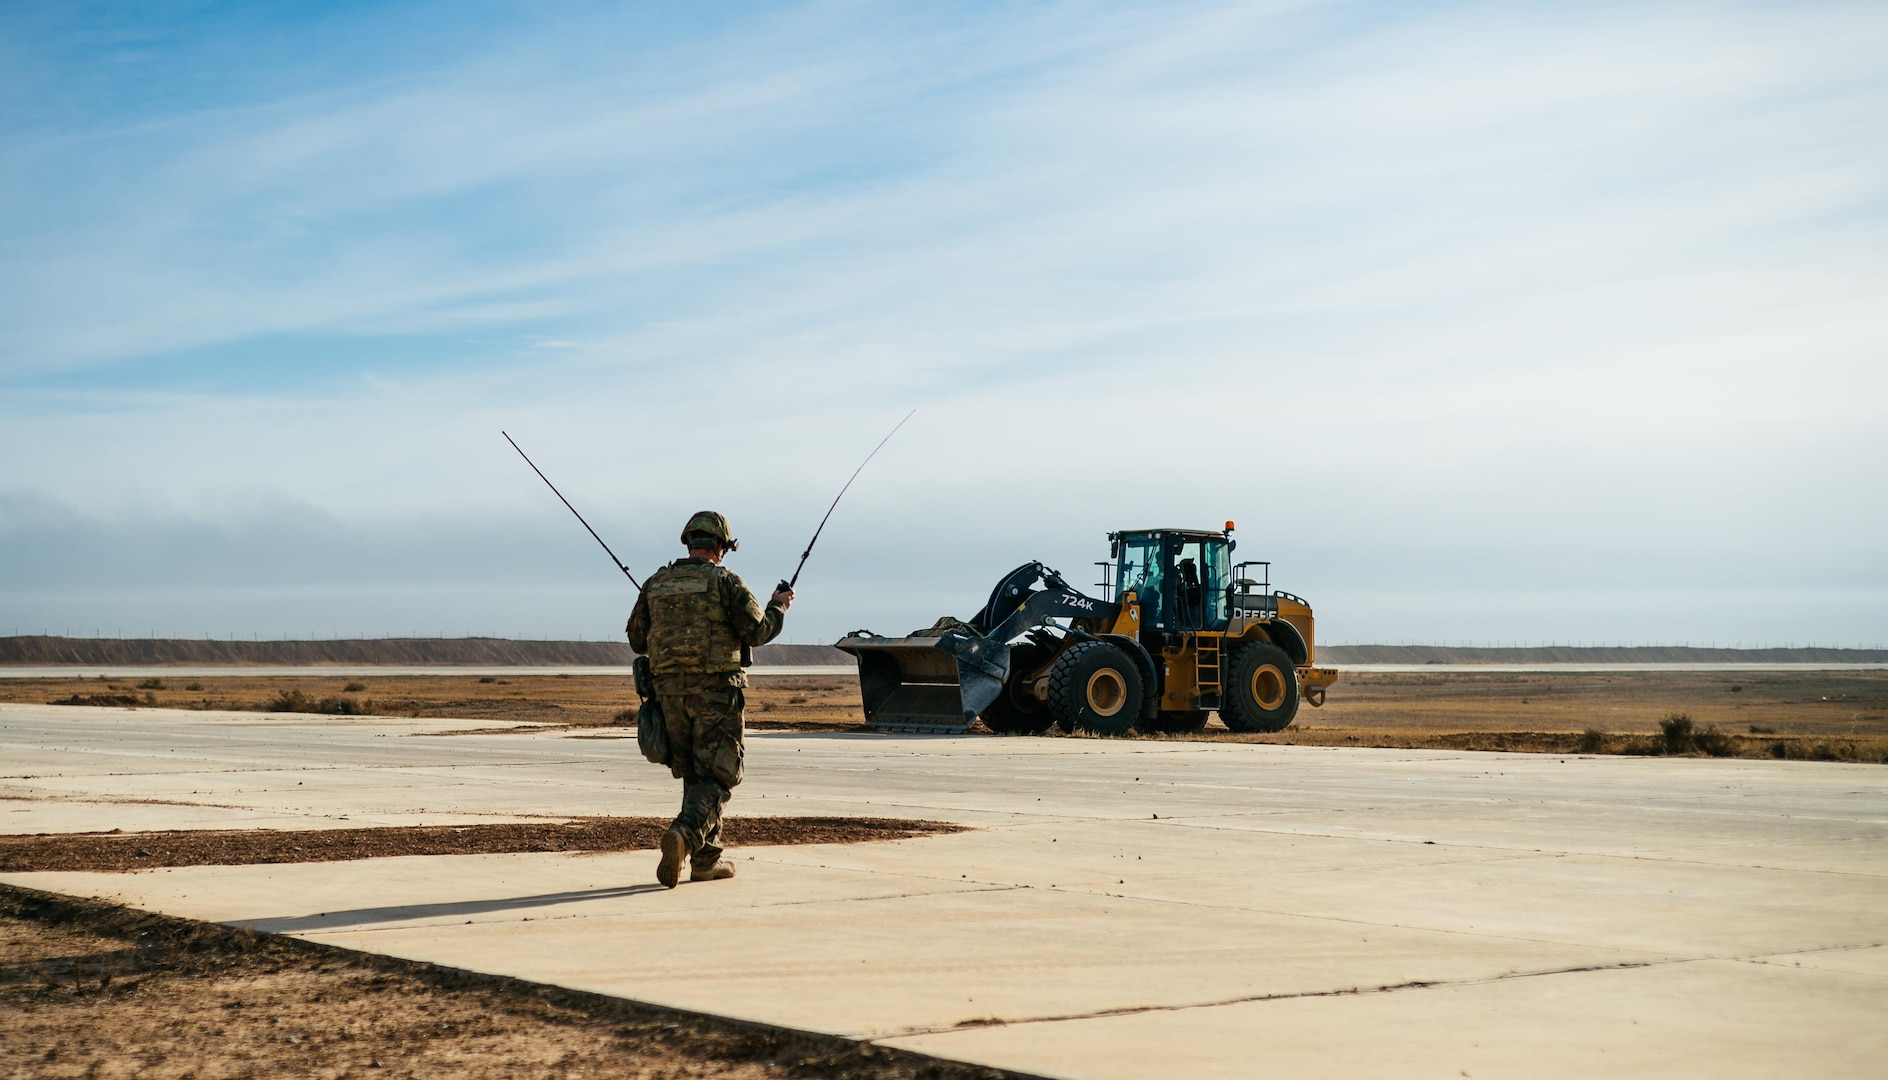 U.S. Air Force Master Sgt. Bradley Rich, 821st Contingency Response Group air traffic controller, prepares to land an Iraqi C-130 at Qayyarah West Airfield, Iraq, in support of Combined Joint Task Force - Operation Inherent Resolve, Nov. 13, 2016. The 821st CRG is actively engaged in tactical airlift operations supporting the Mosul offensive. (U.S. Air Force photo by Senior Airman Jordan Castelan)